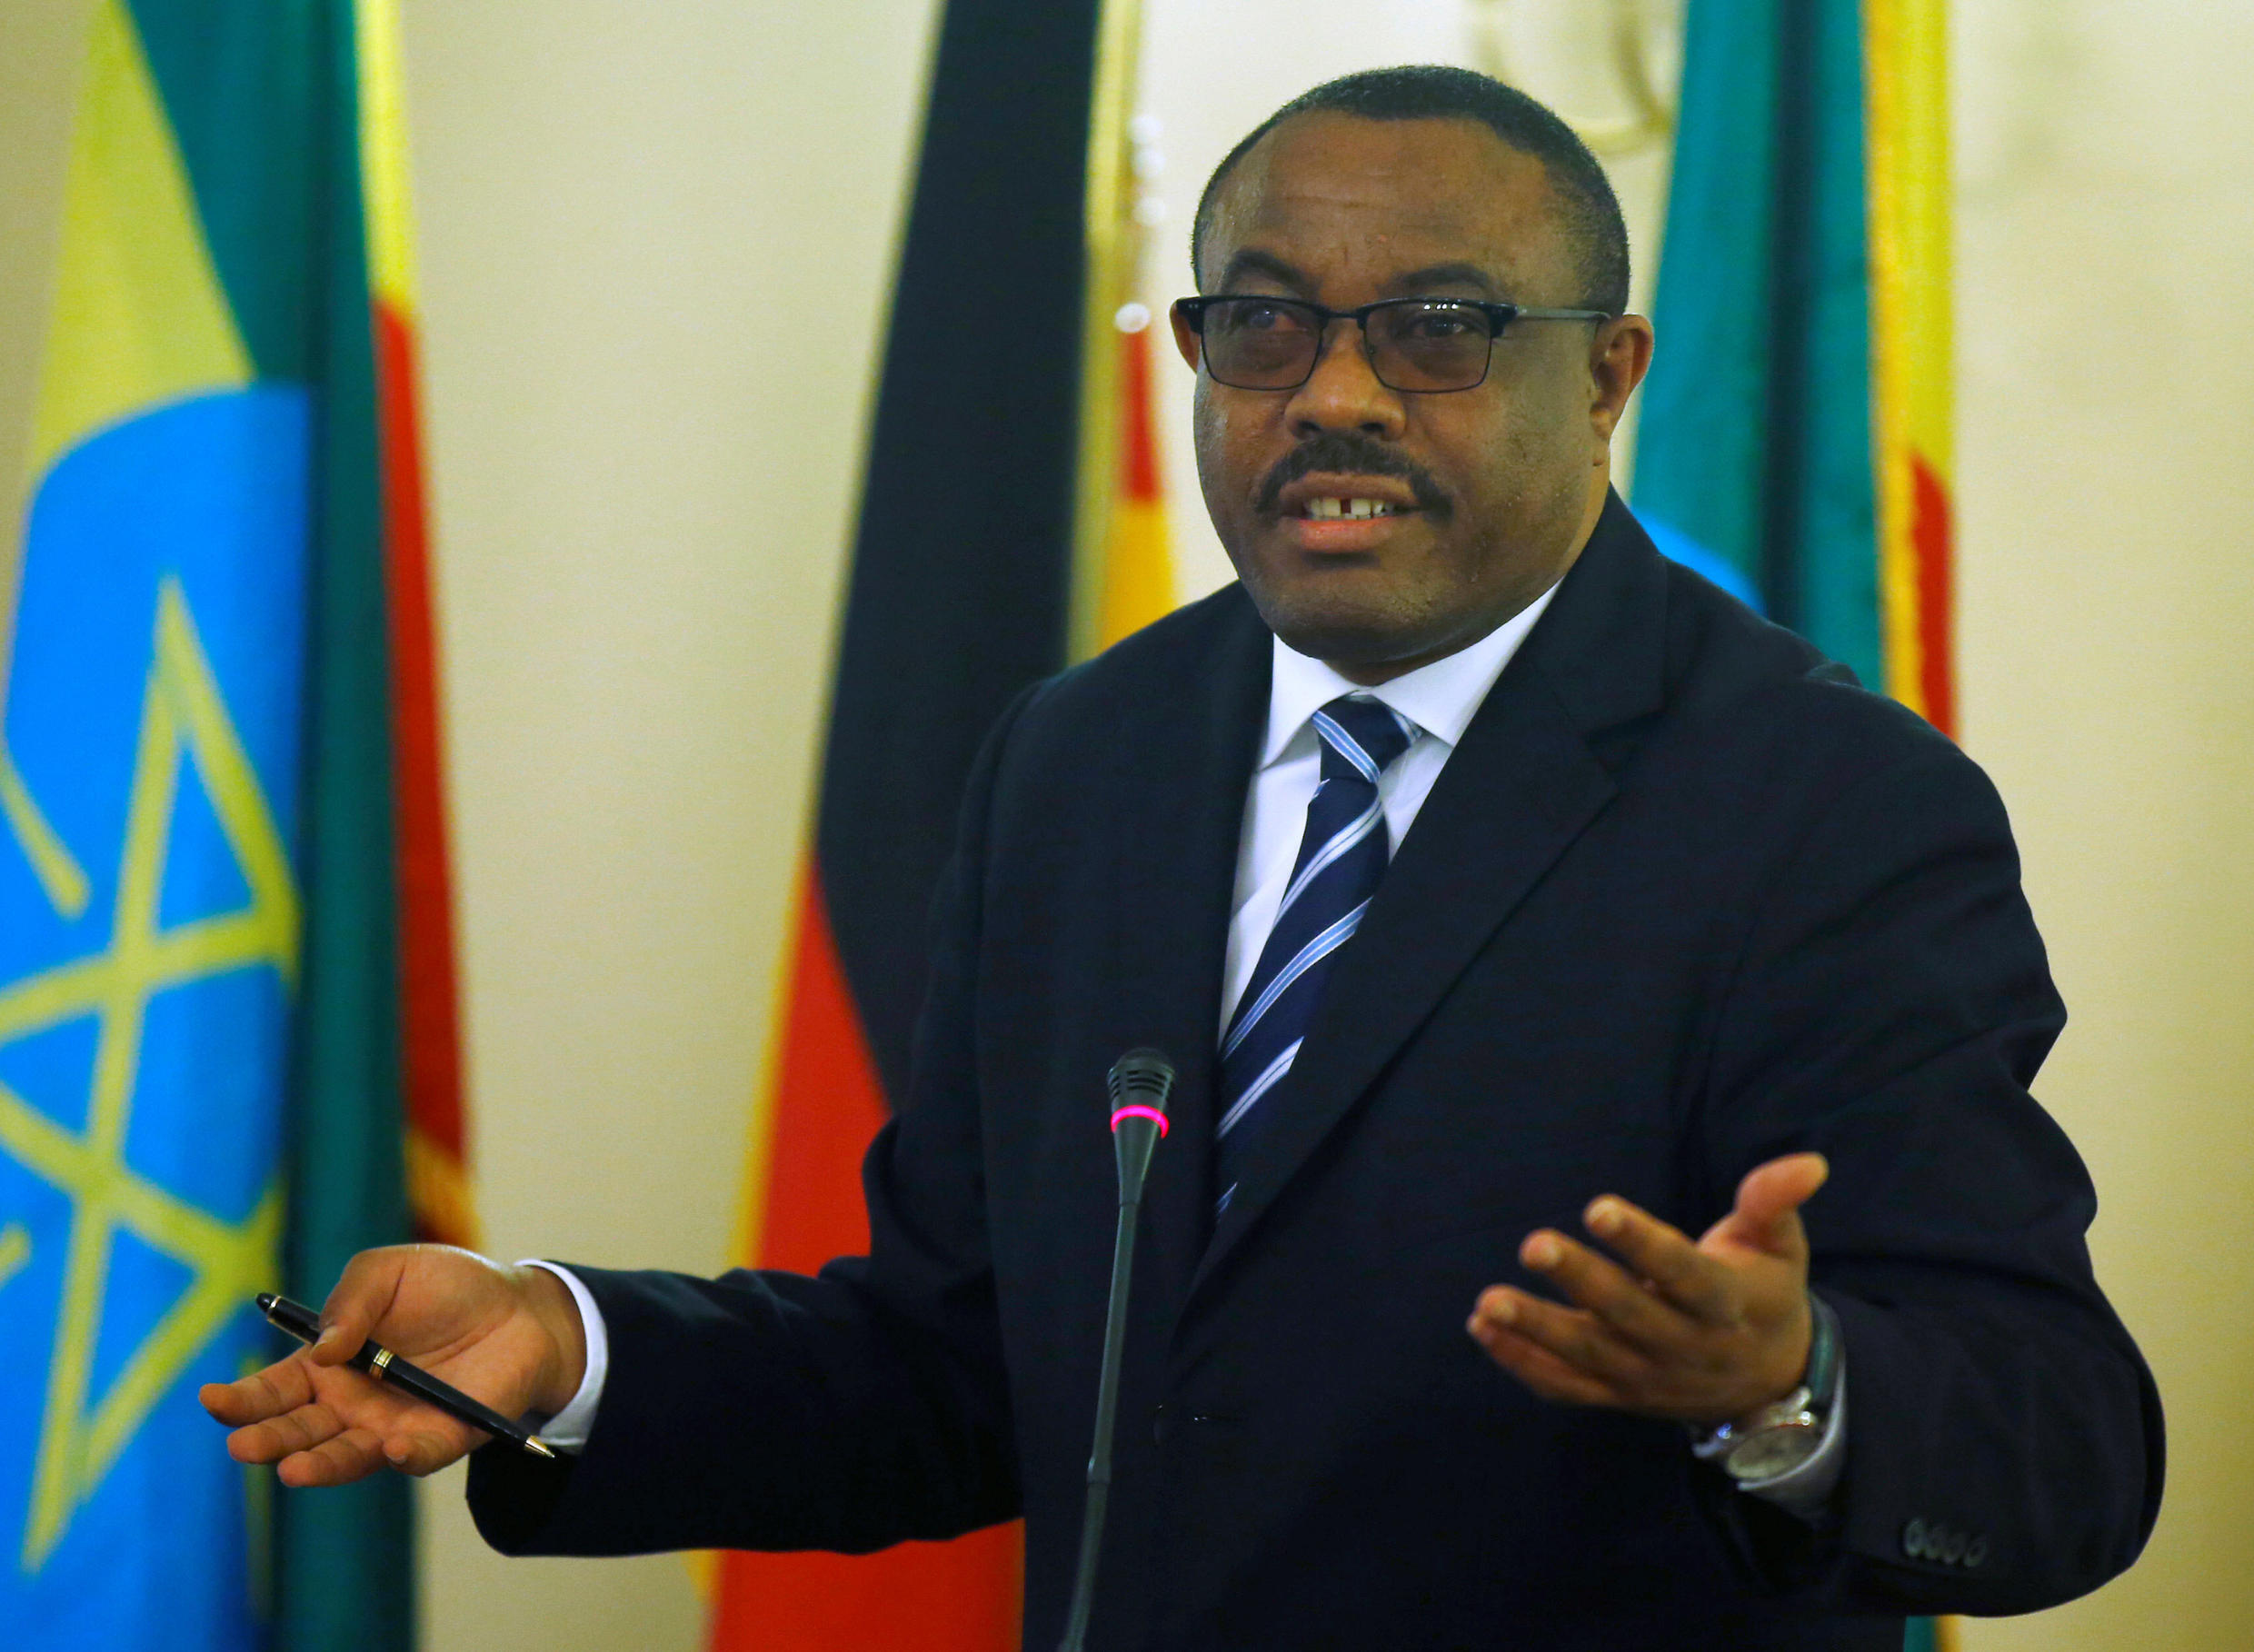 Ethiopian Prime Minister Hailemariam Desalegn at a news conference in Addis Ababa, Ethiopia on 11 October 2016.